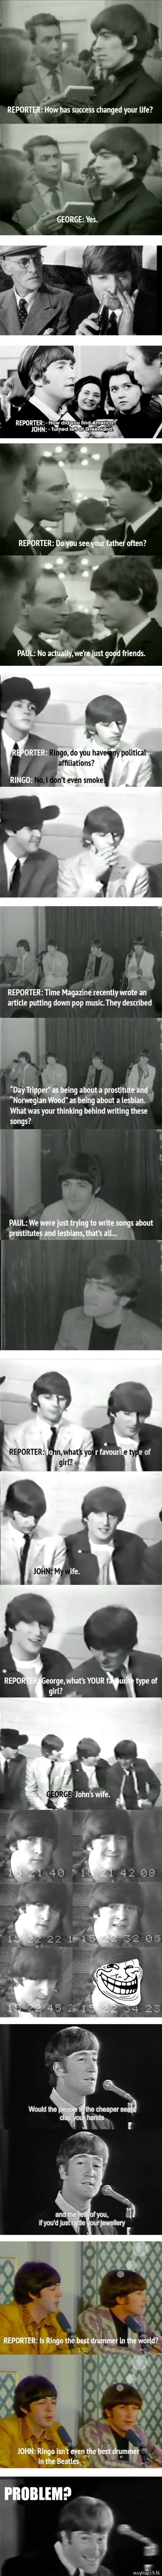 Interviewing The Beatles.